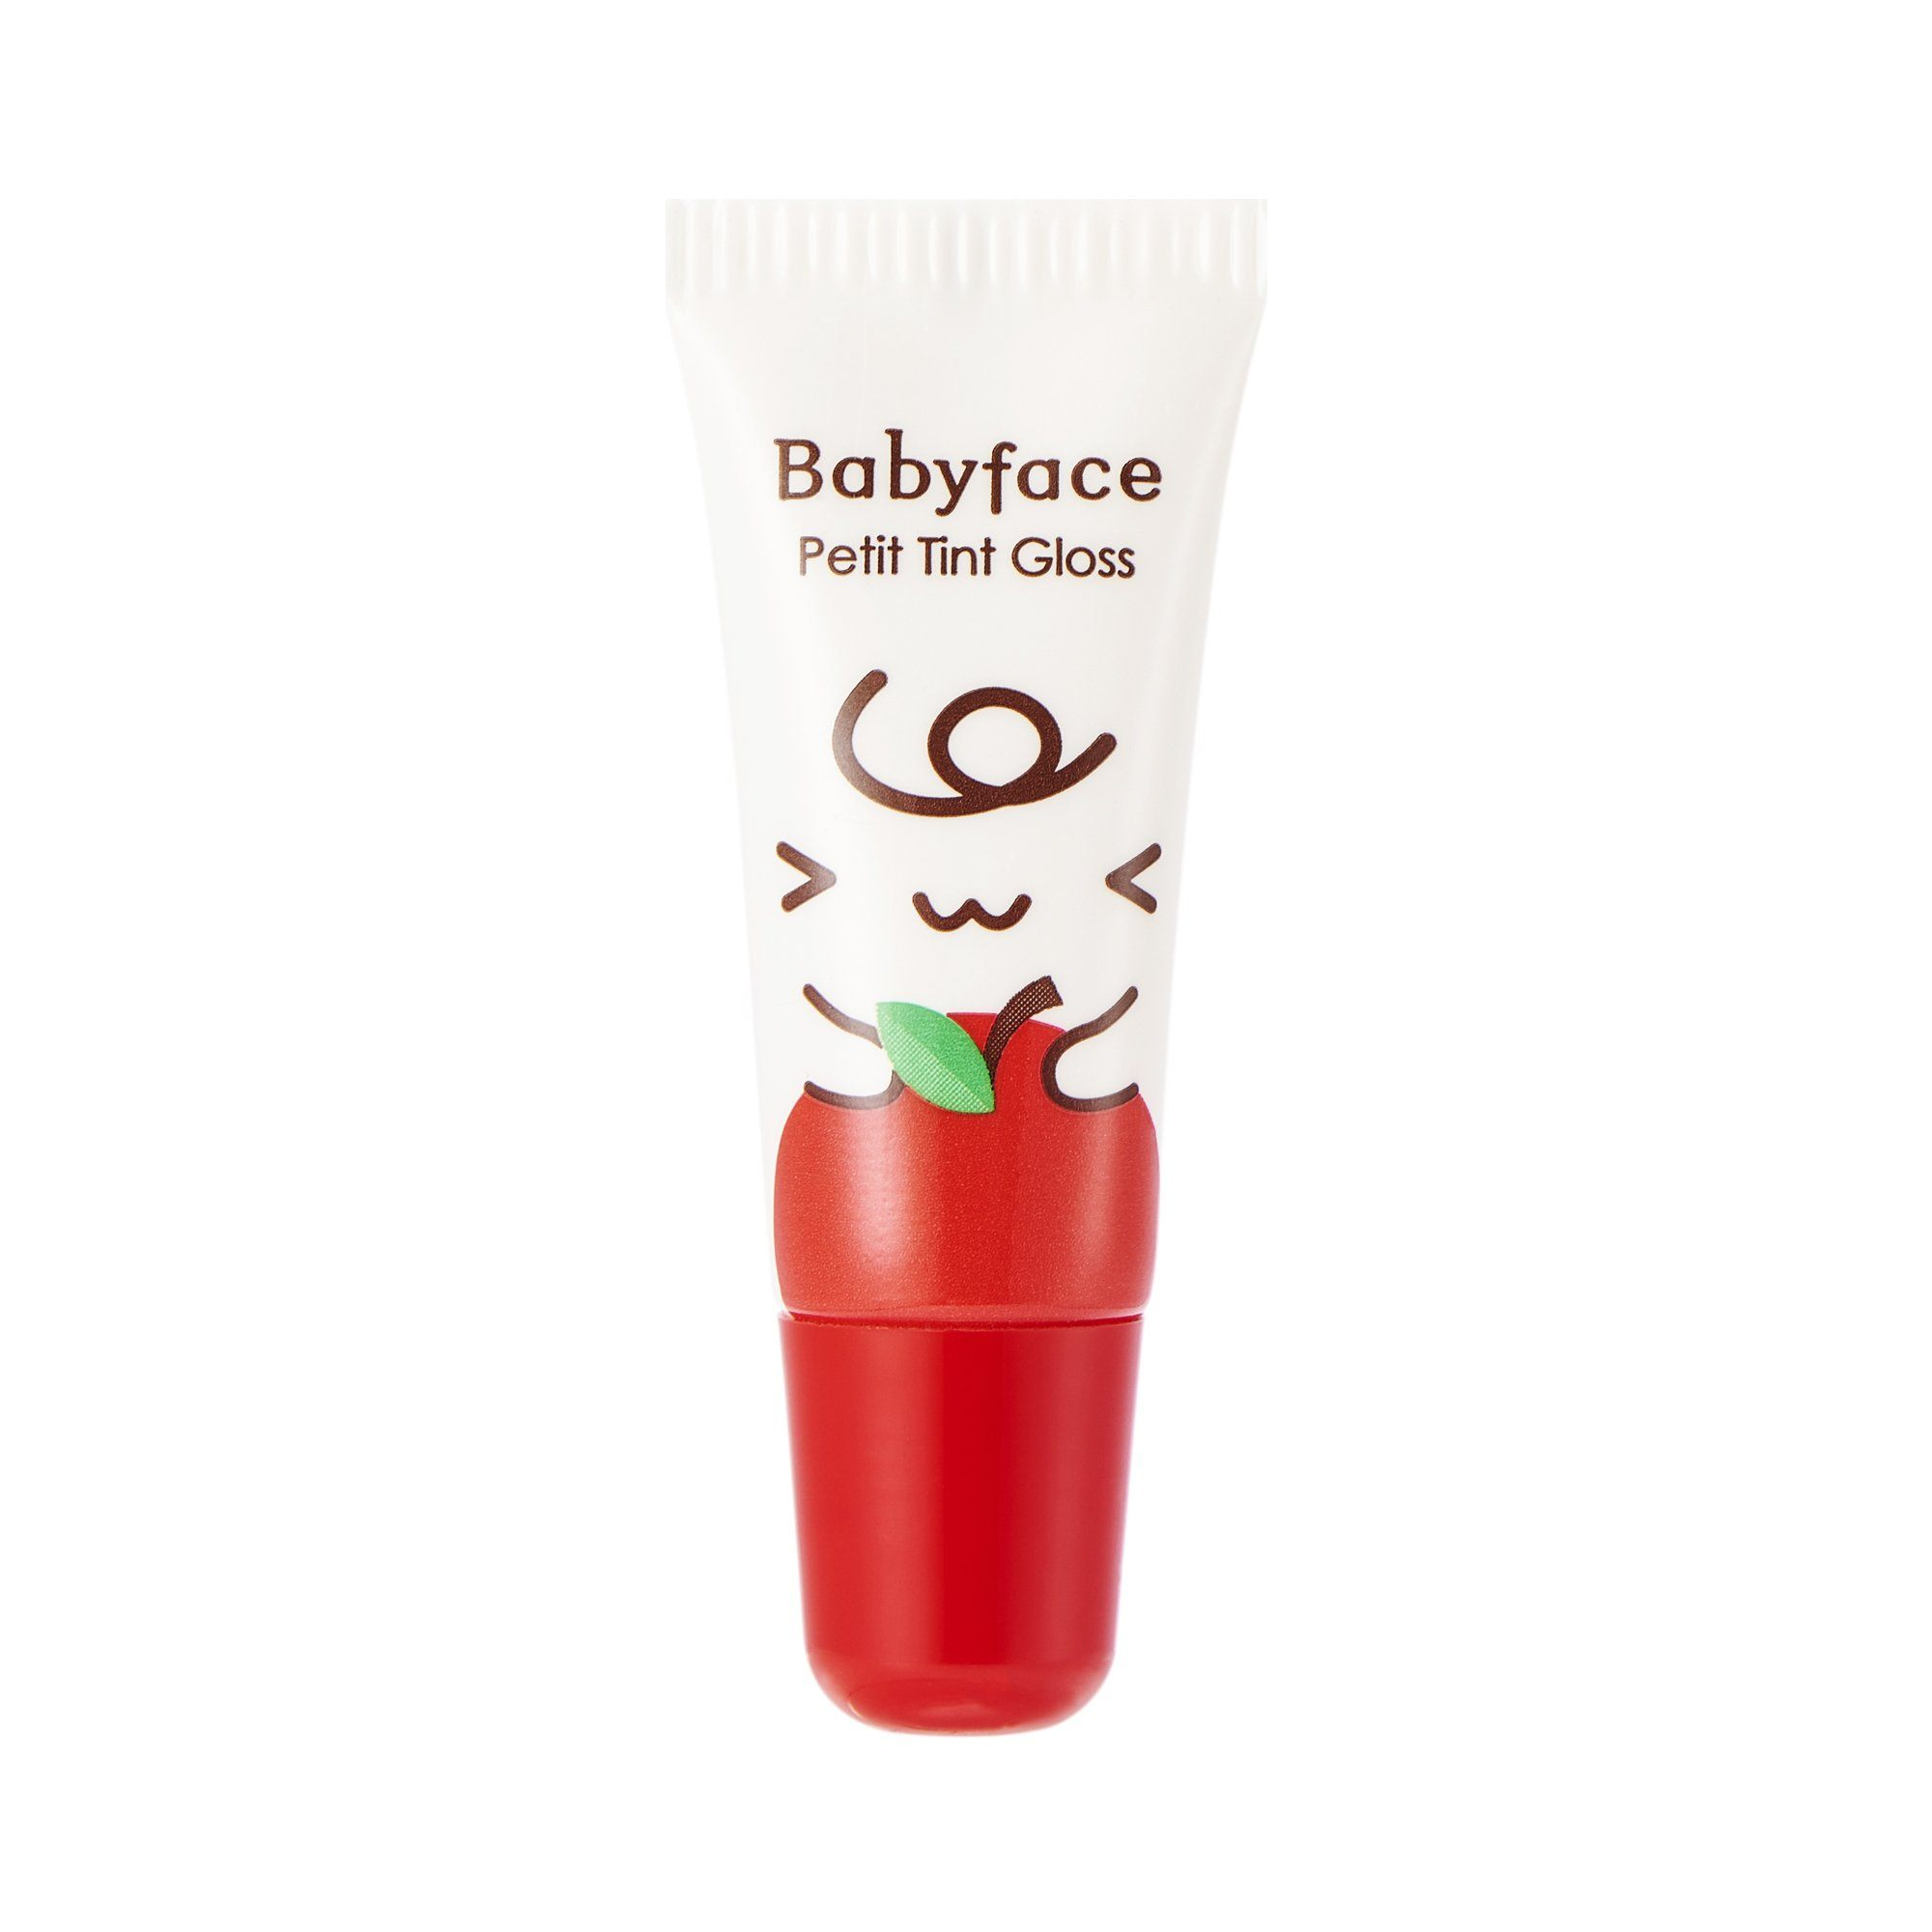 Health & Beauty > Personal Care > Cosmetics > Makeup > Lip Makeup - Babyface Petit Tint Gloss 01 Apple Tint Do Ust 8 G